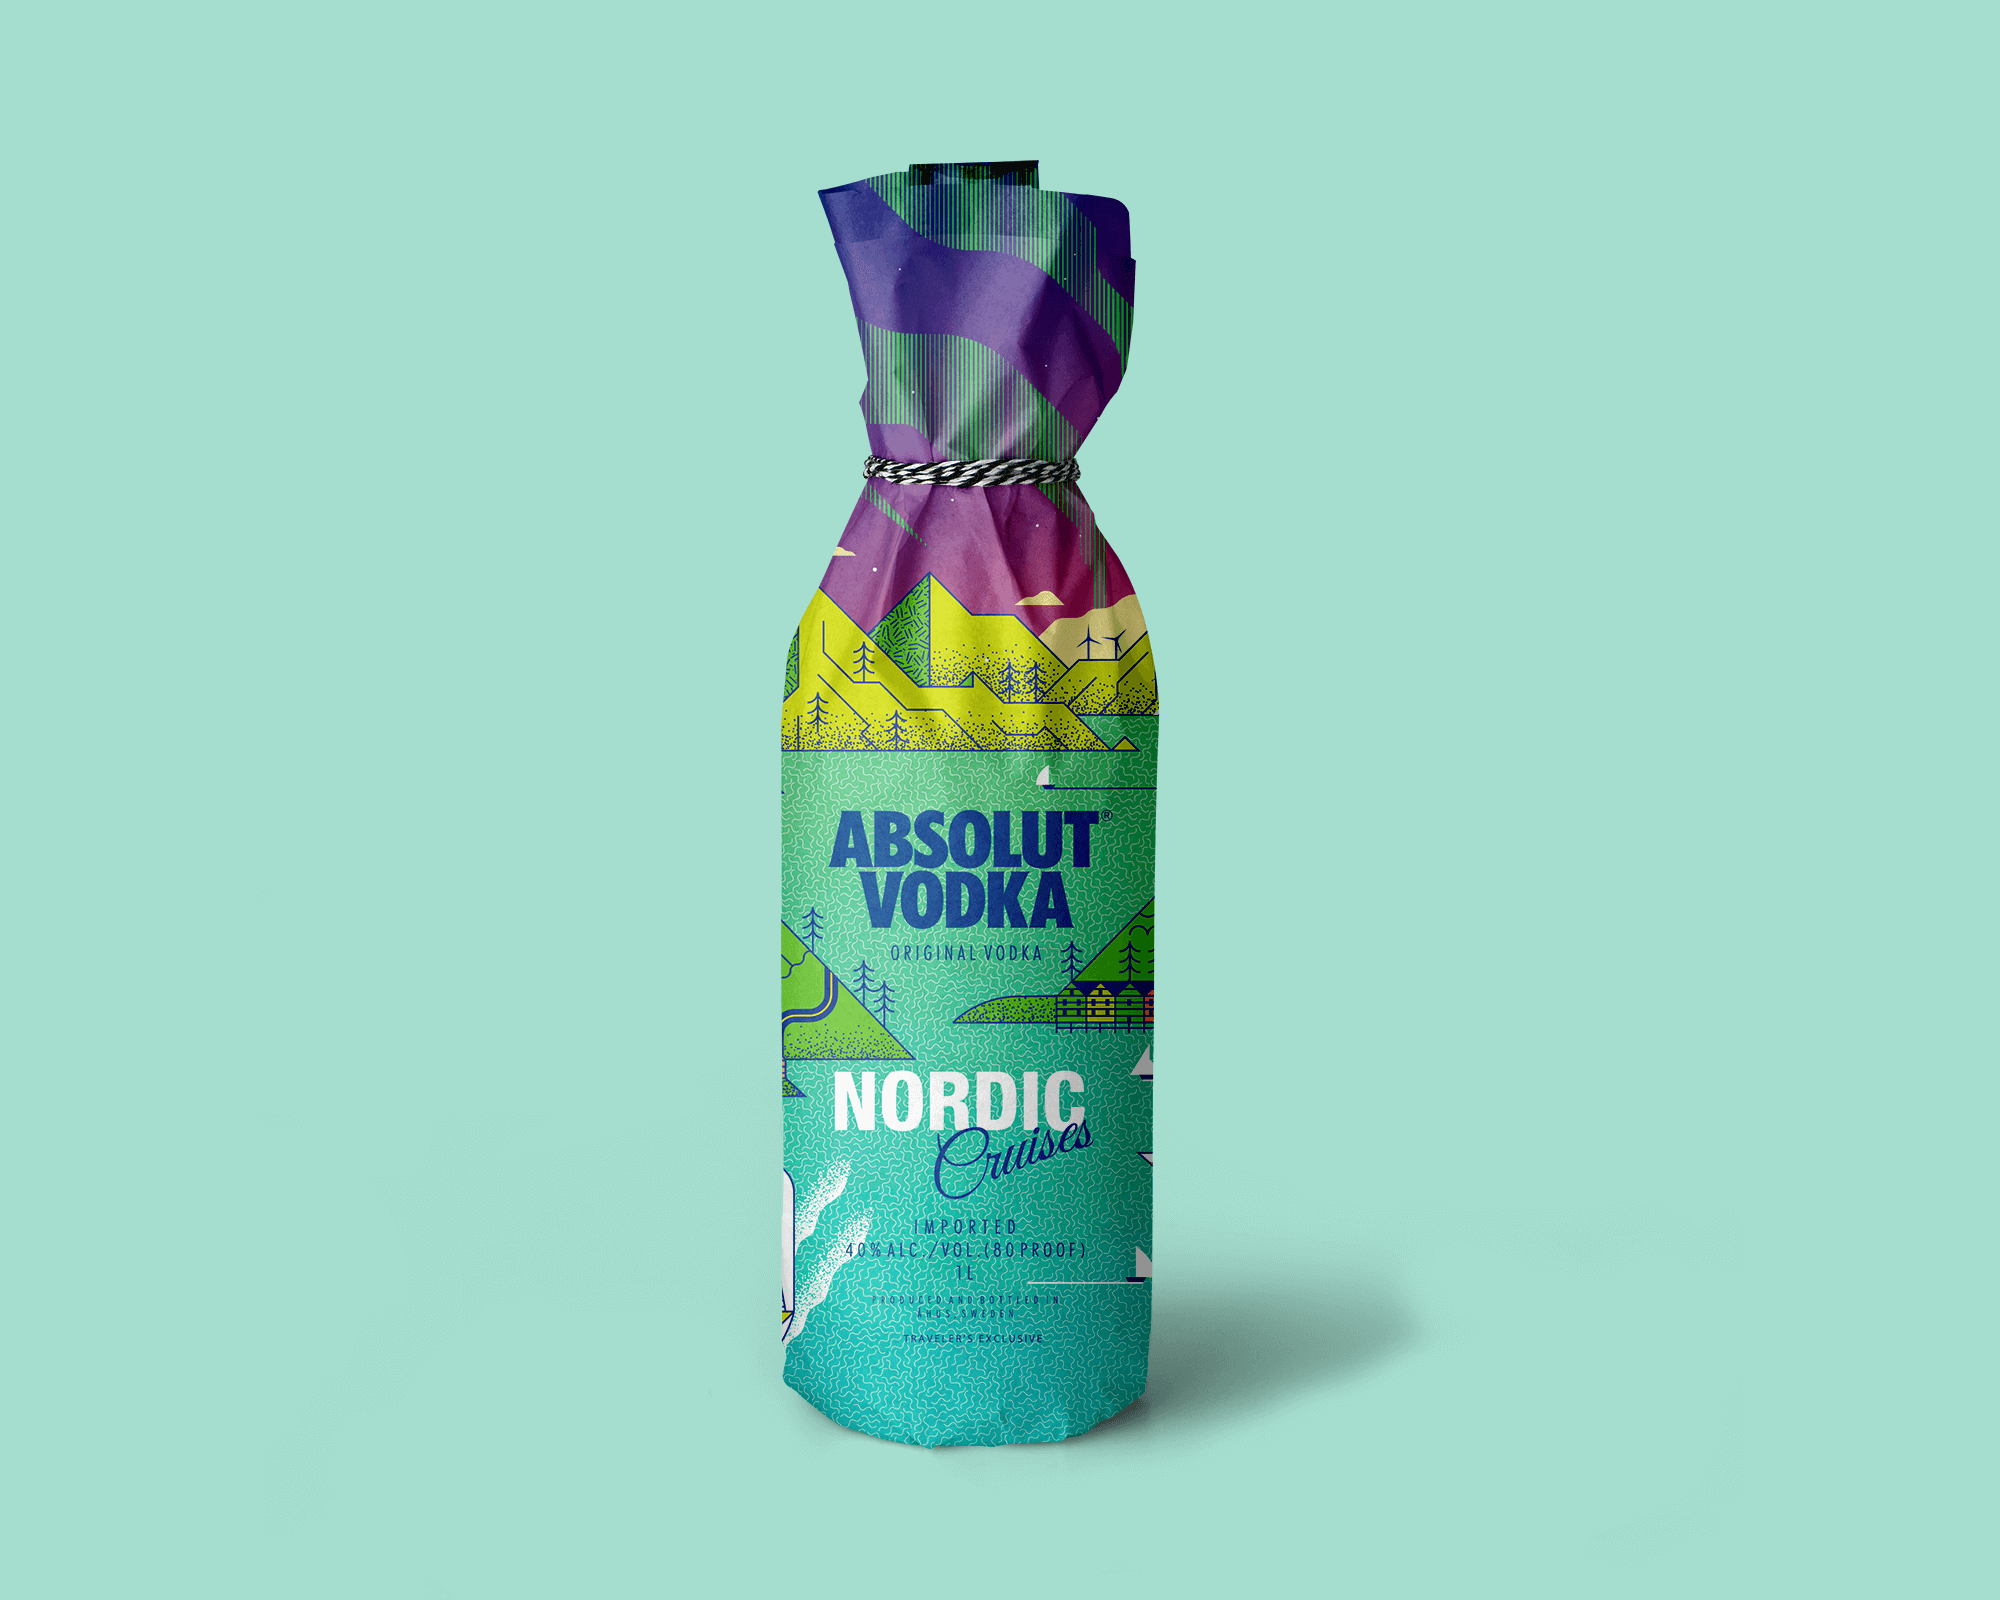 absolut_vodka_packaging_nordic_cruises